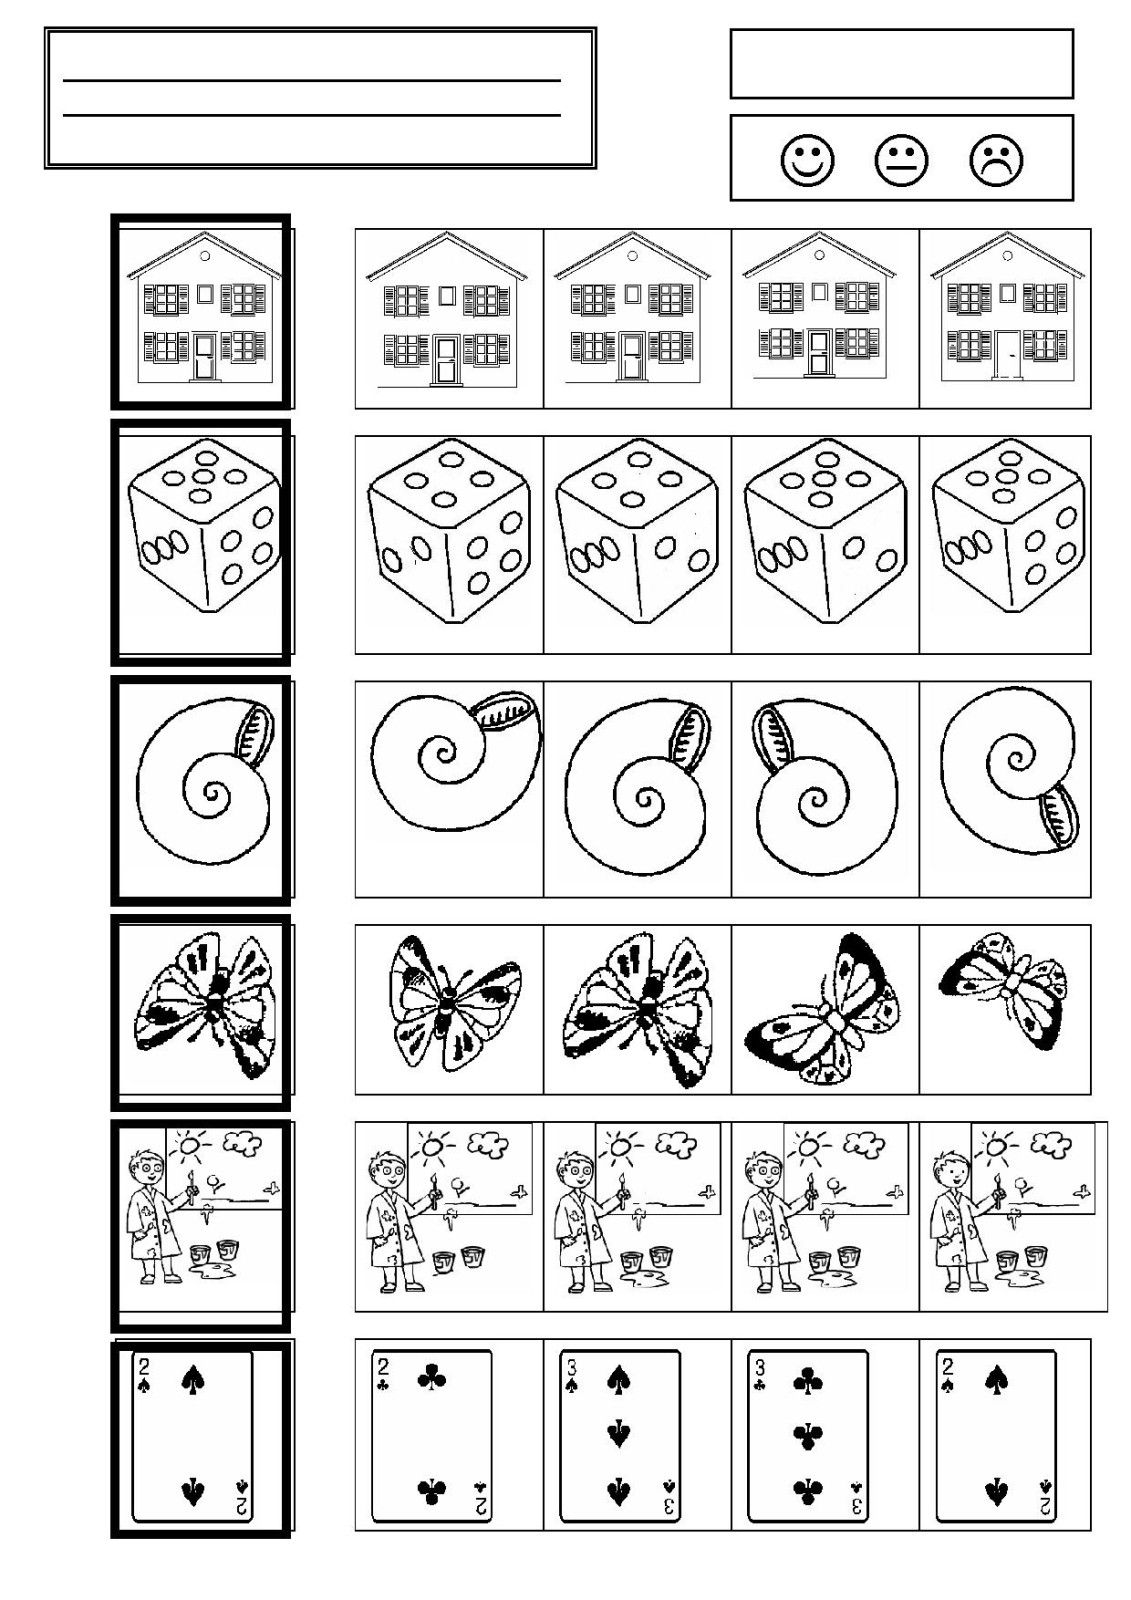 Cognitive Therapy Worksheet Christmas